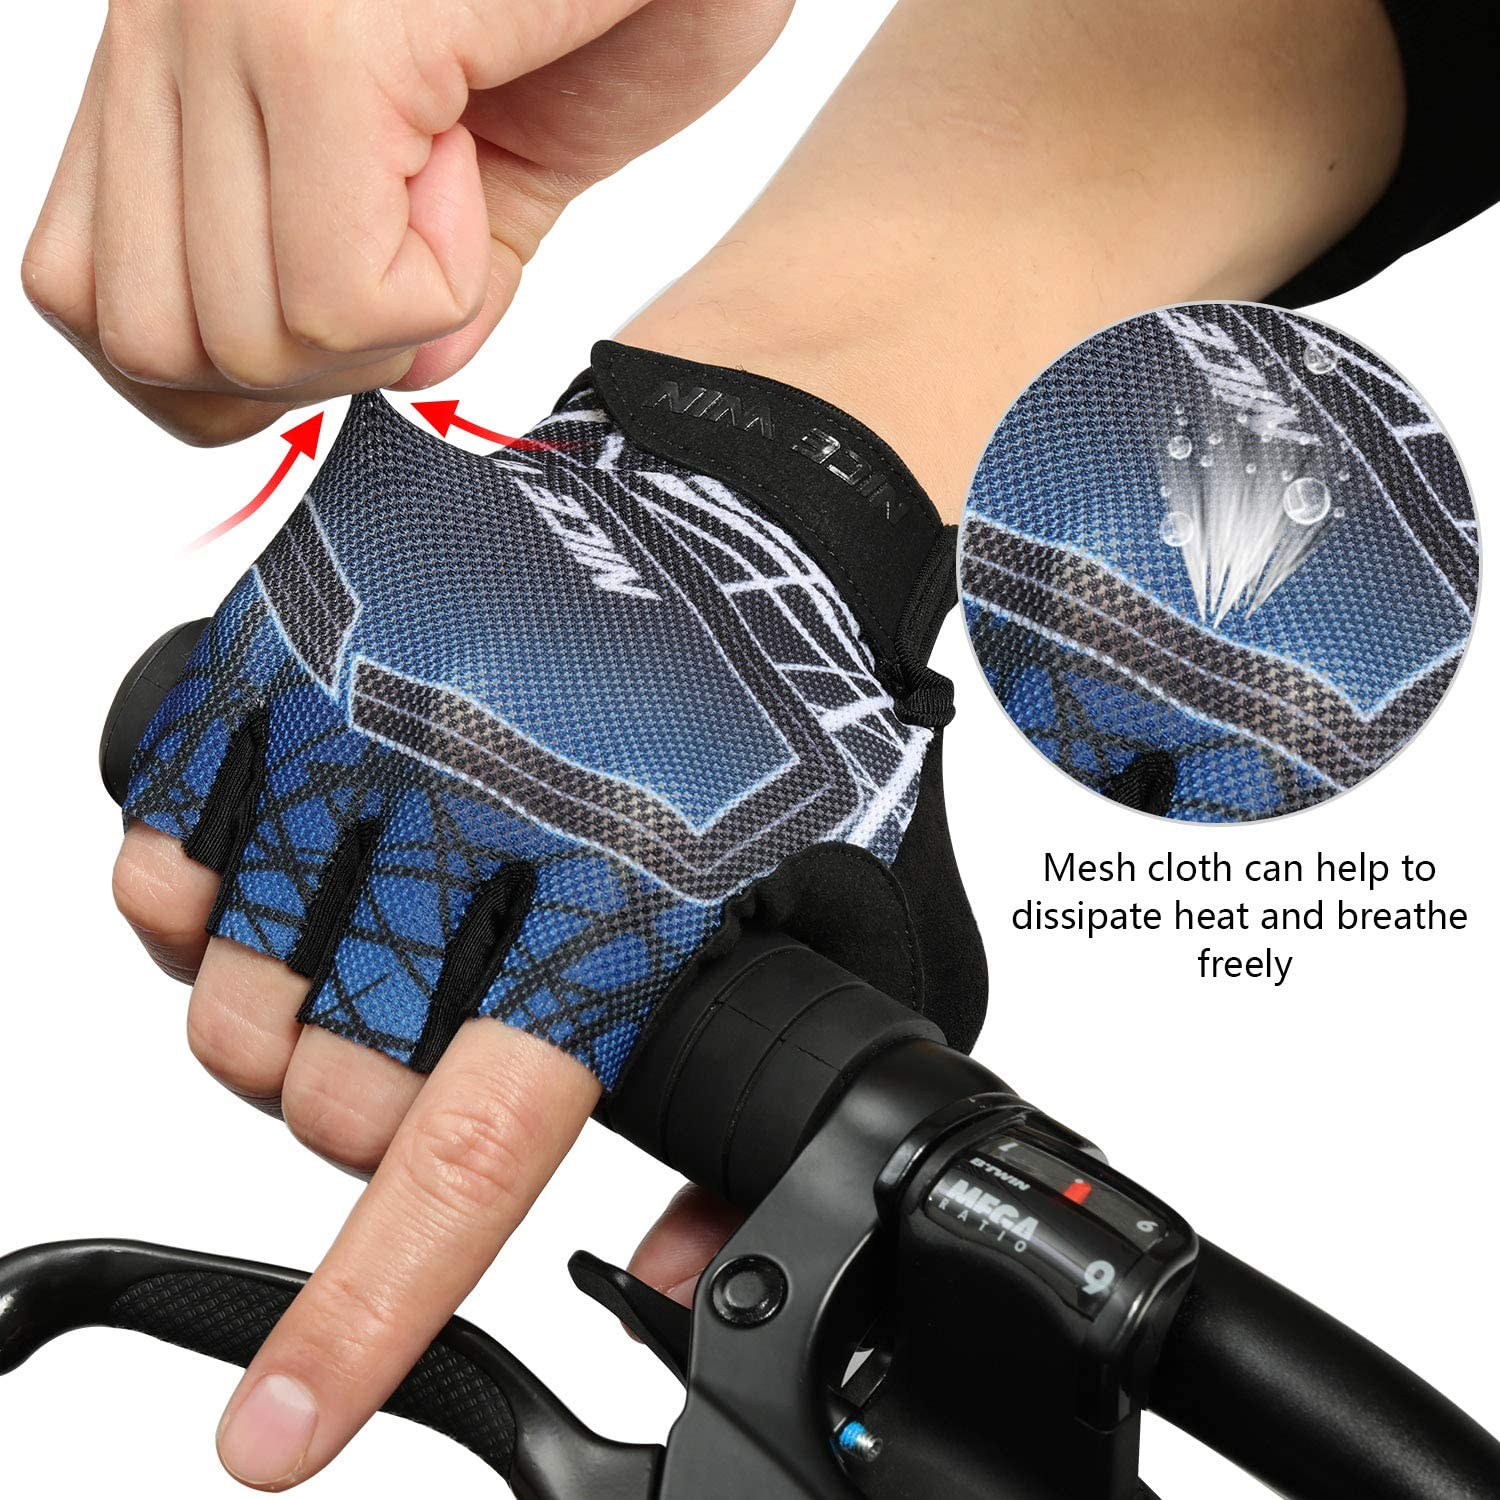 NICEWIN Fingerless Cycling Gloves for Men Women Mountain Road Bike Motorcycle with Non-Slip Shockproof Pad Gradient Color Design